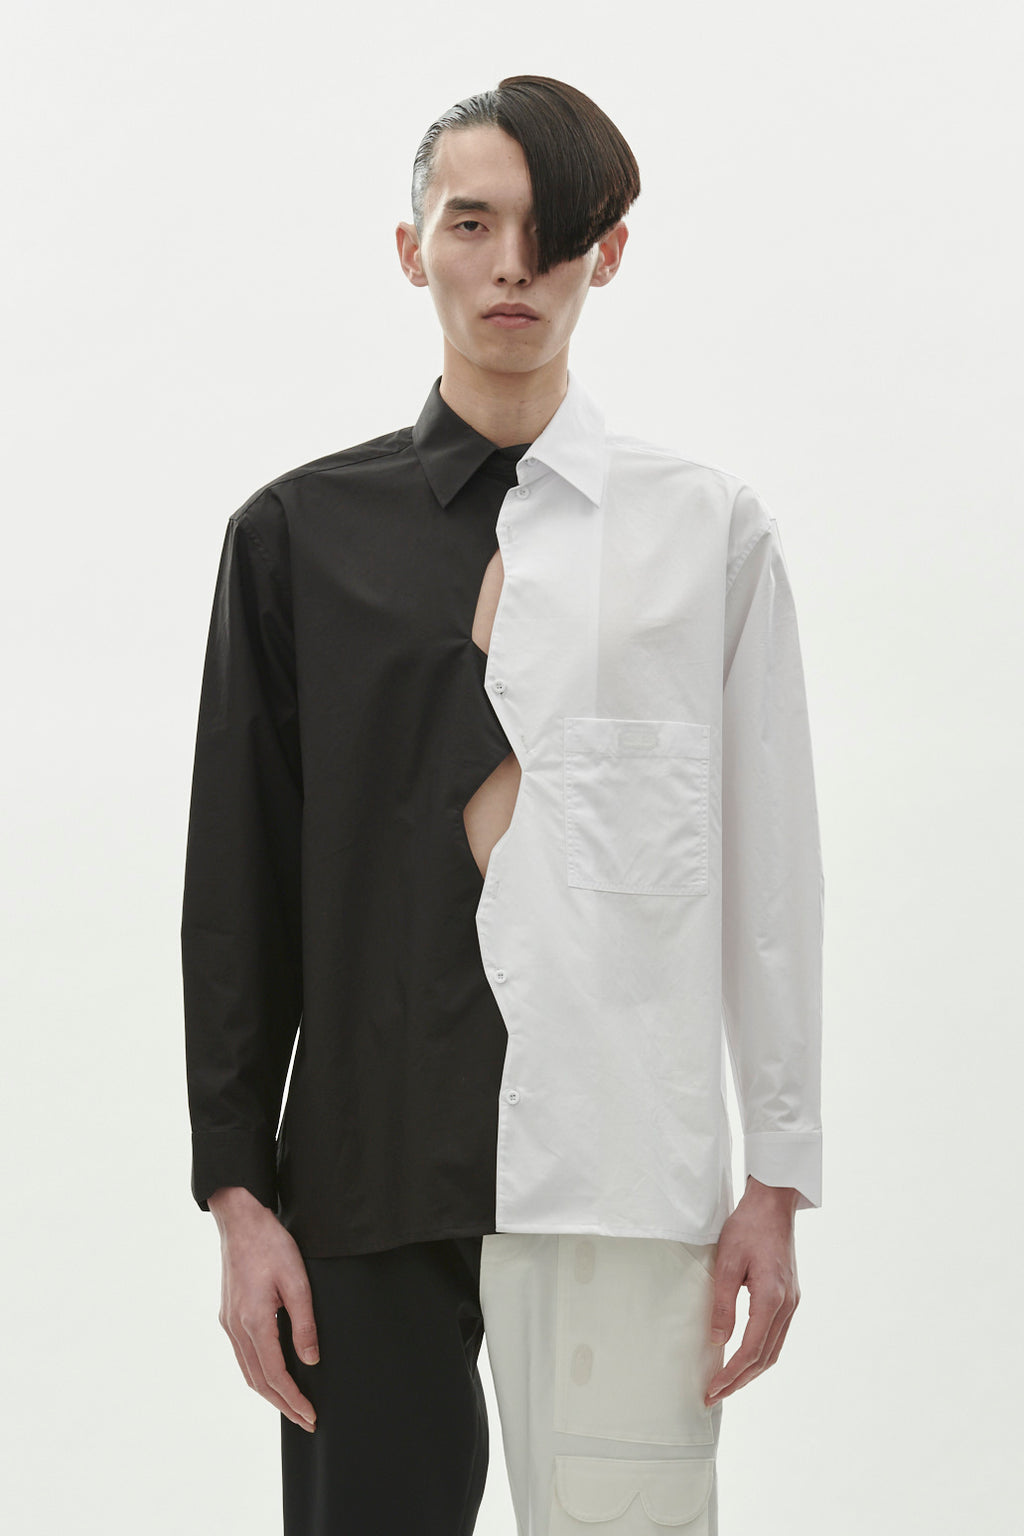 Zig Zag Shirt - Black/White